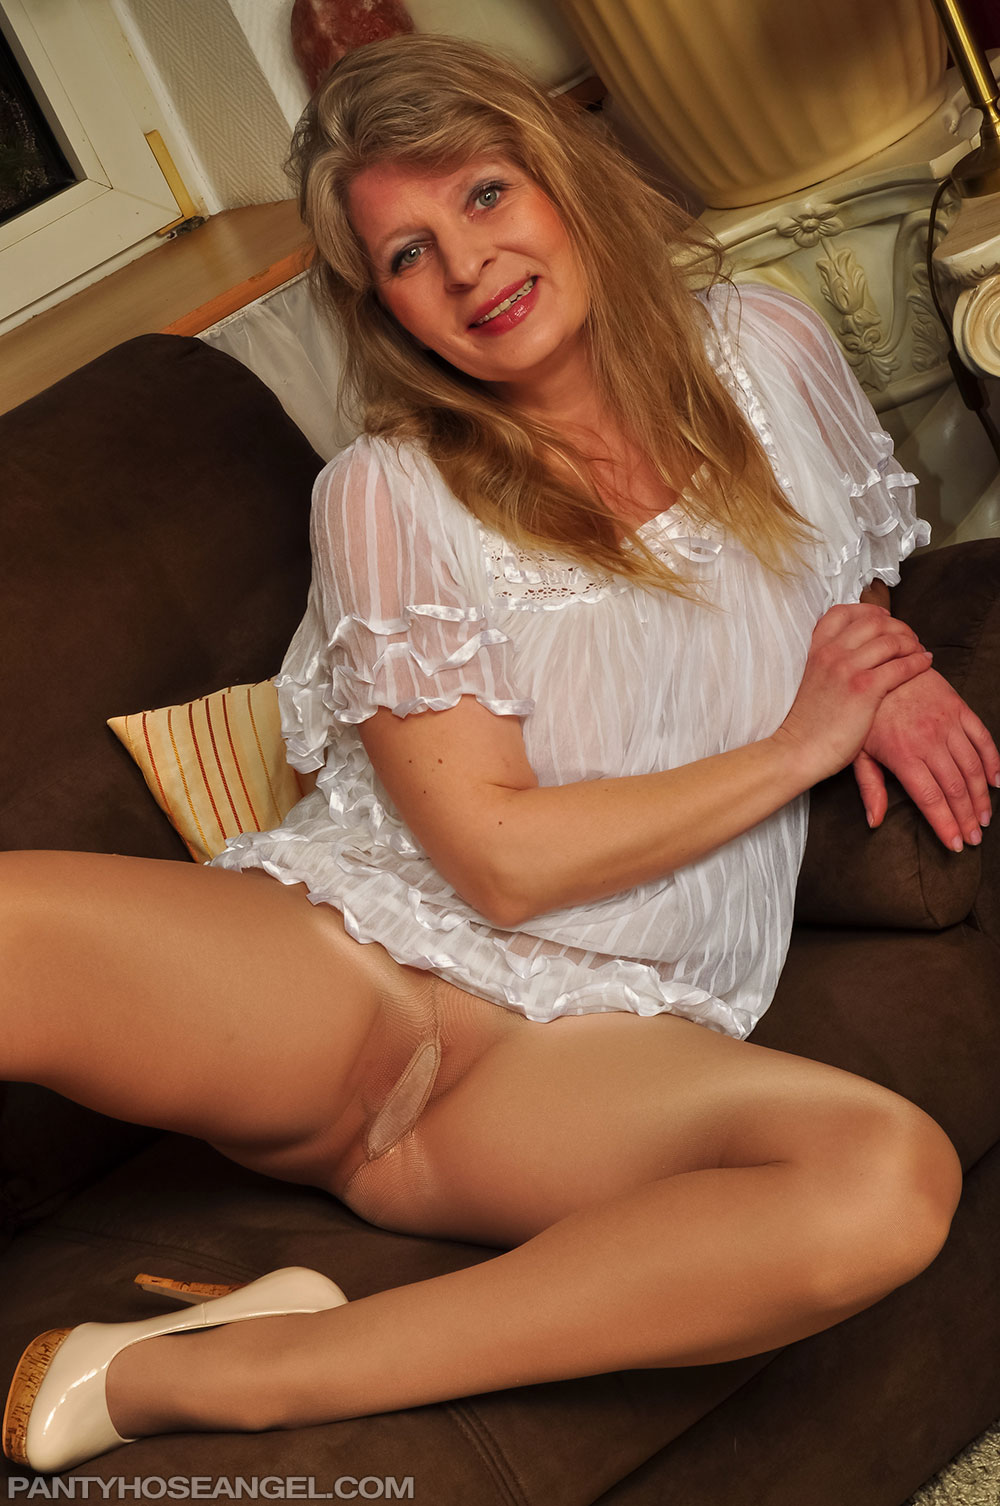 Free blonde pictures